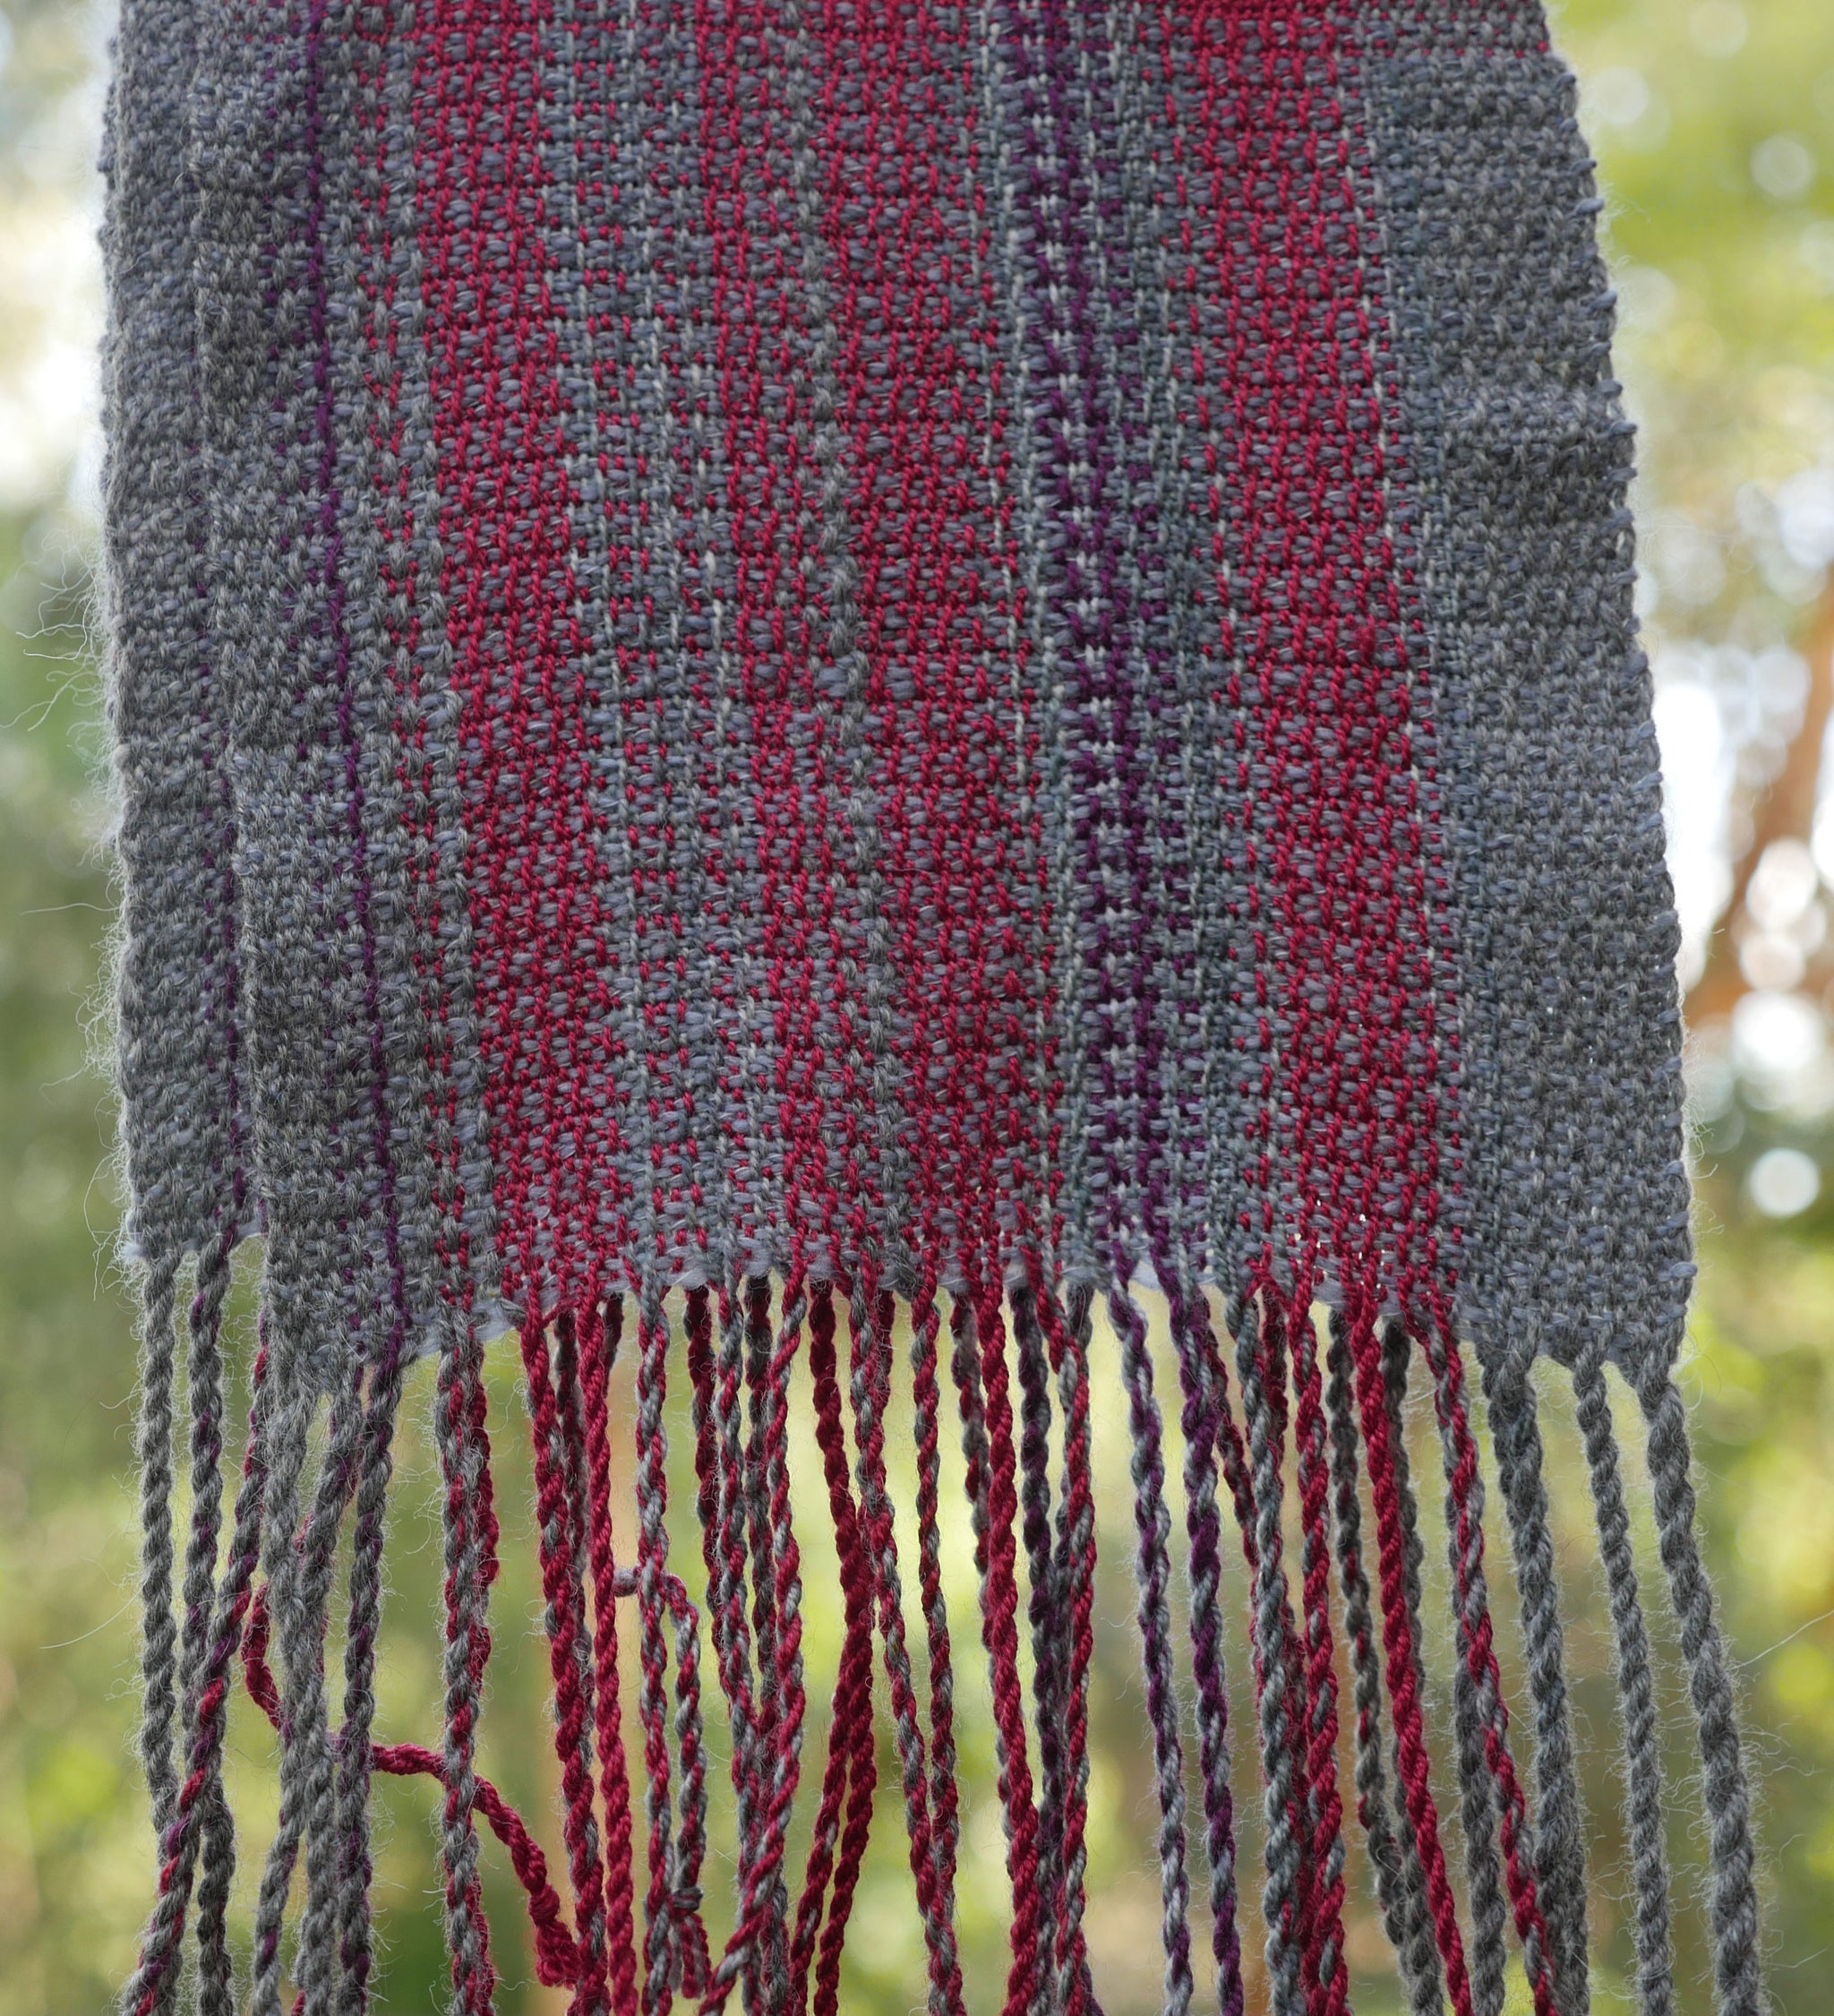 Hand woven scarf for man or woman by Vicki Lowery